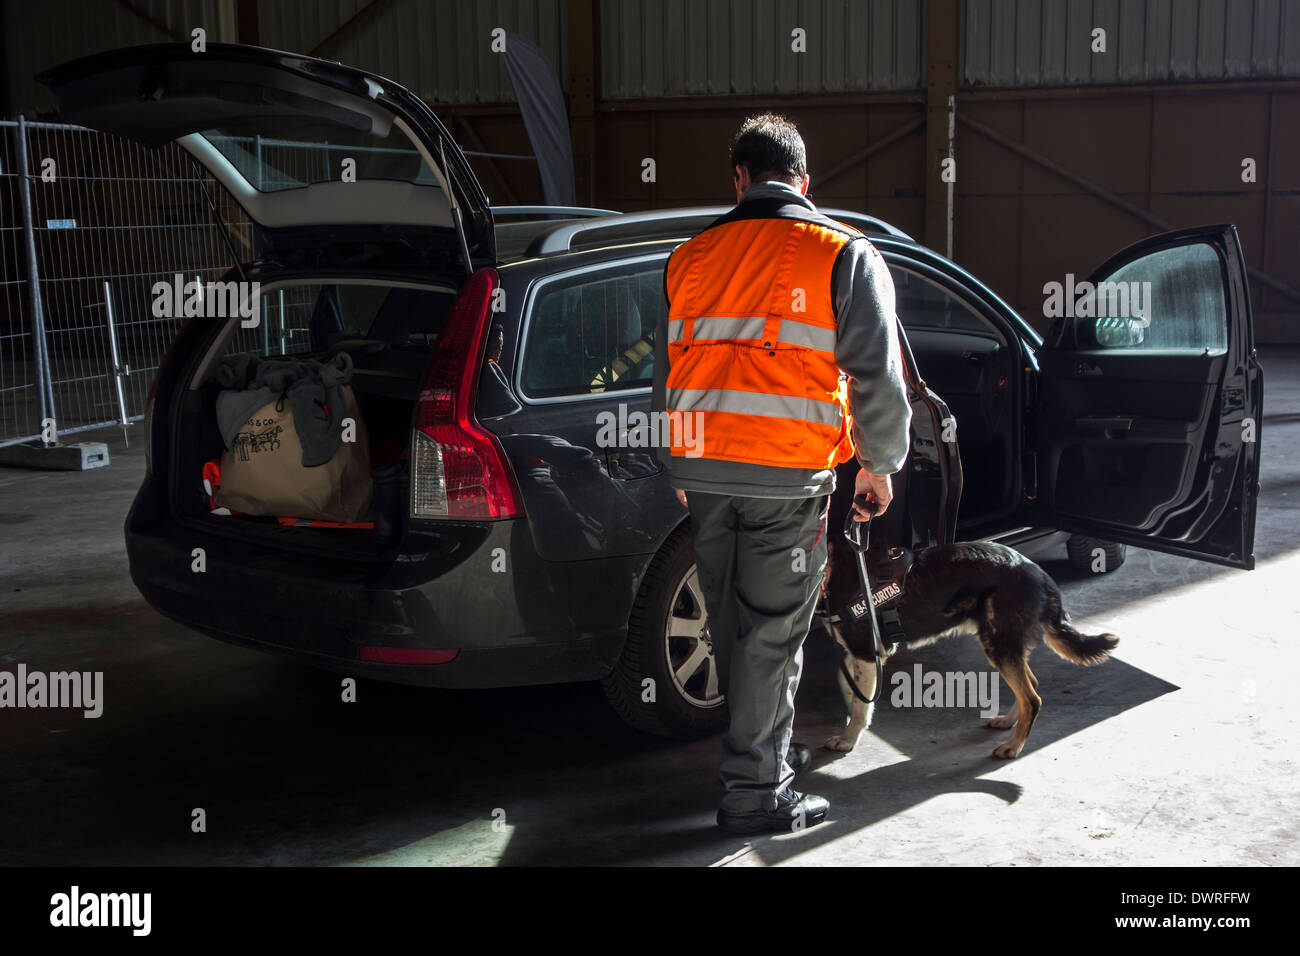 Car being searched for explosives and drugs by handler with explosive-detection dog of the Securitas K9 Explosive Detection Team - Stock Image